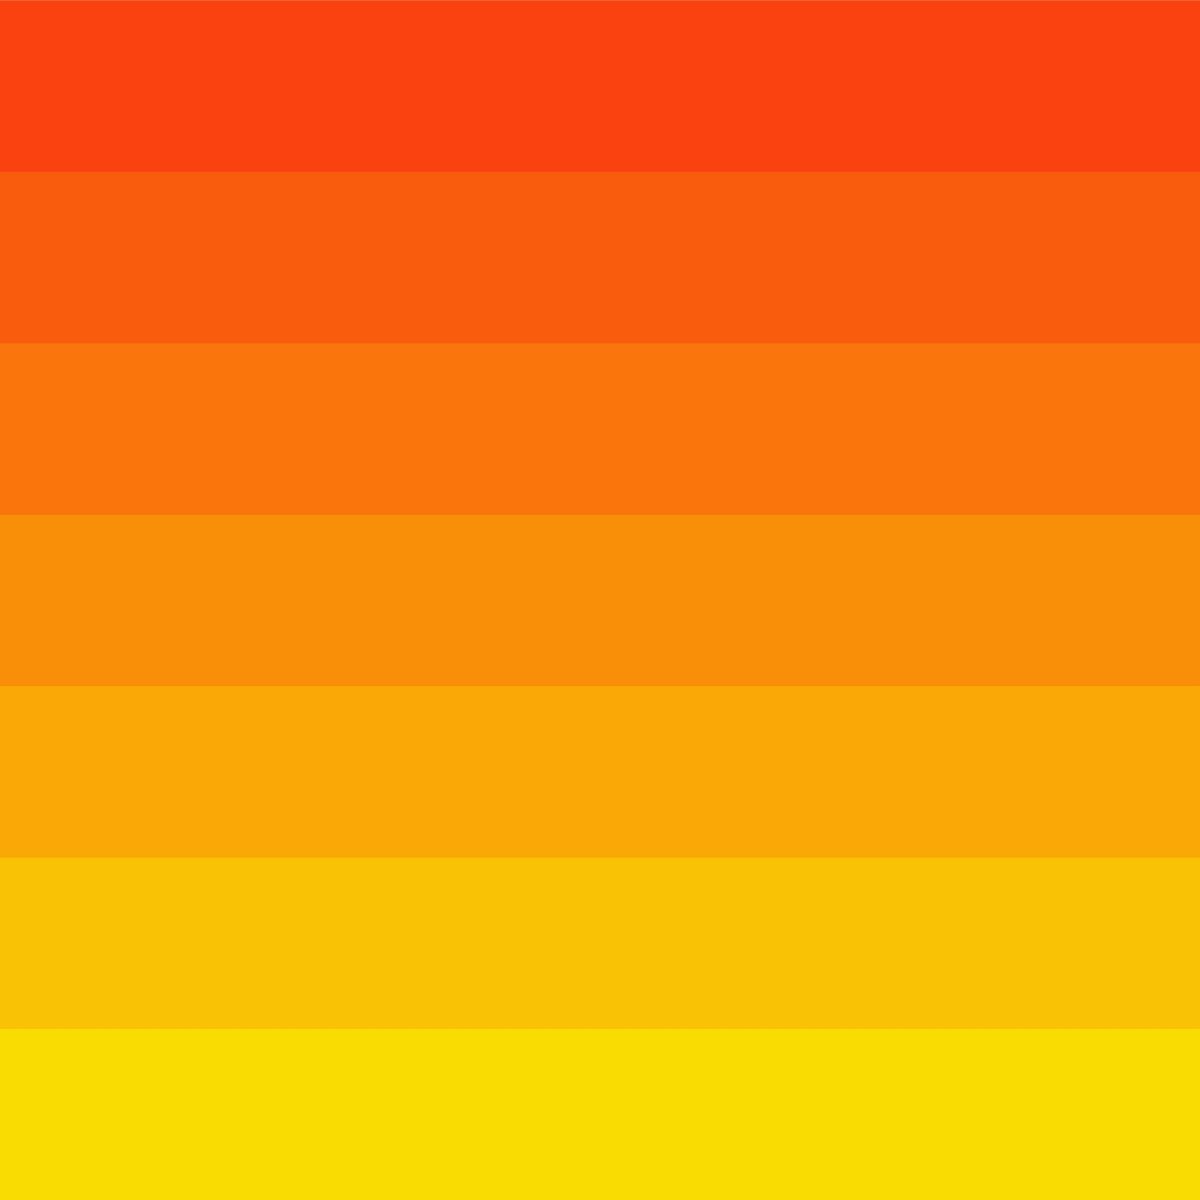 Green, Yellow, and Orange Color Combos to Avoid: Yellow and Orange